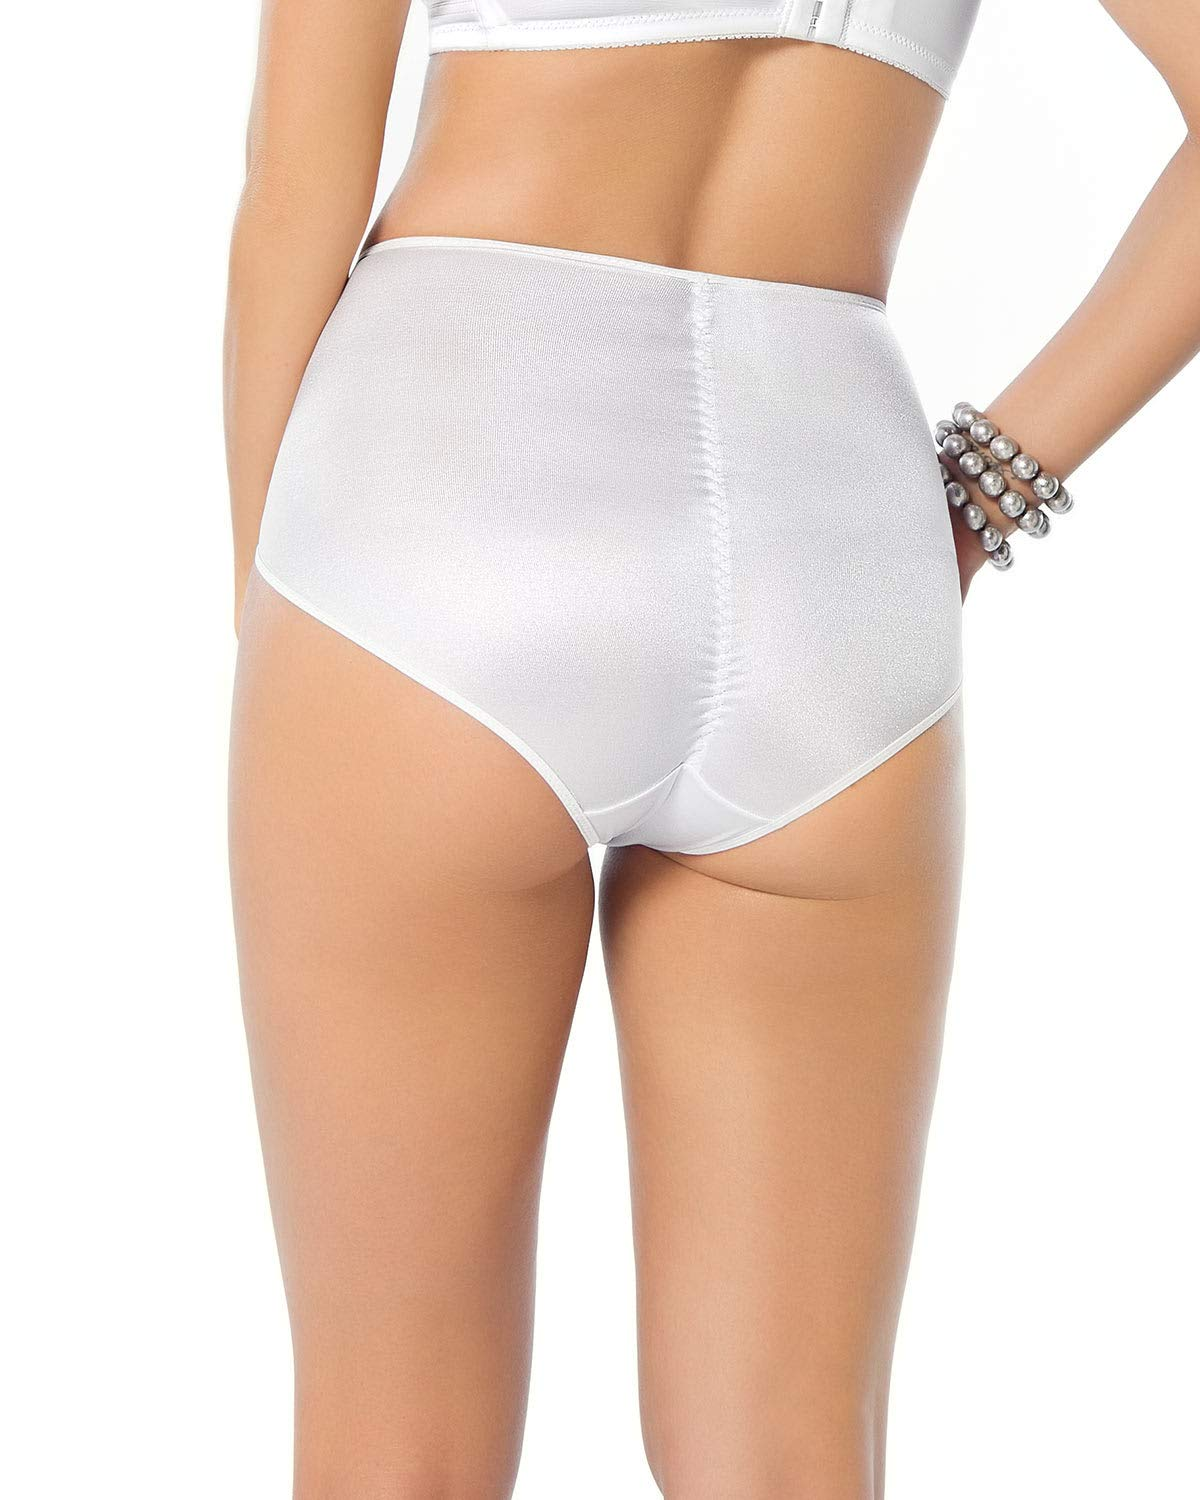 Leonisa Women's High Waist Firm Tummy Control Compression Panty 0243